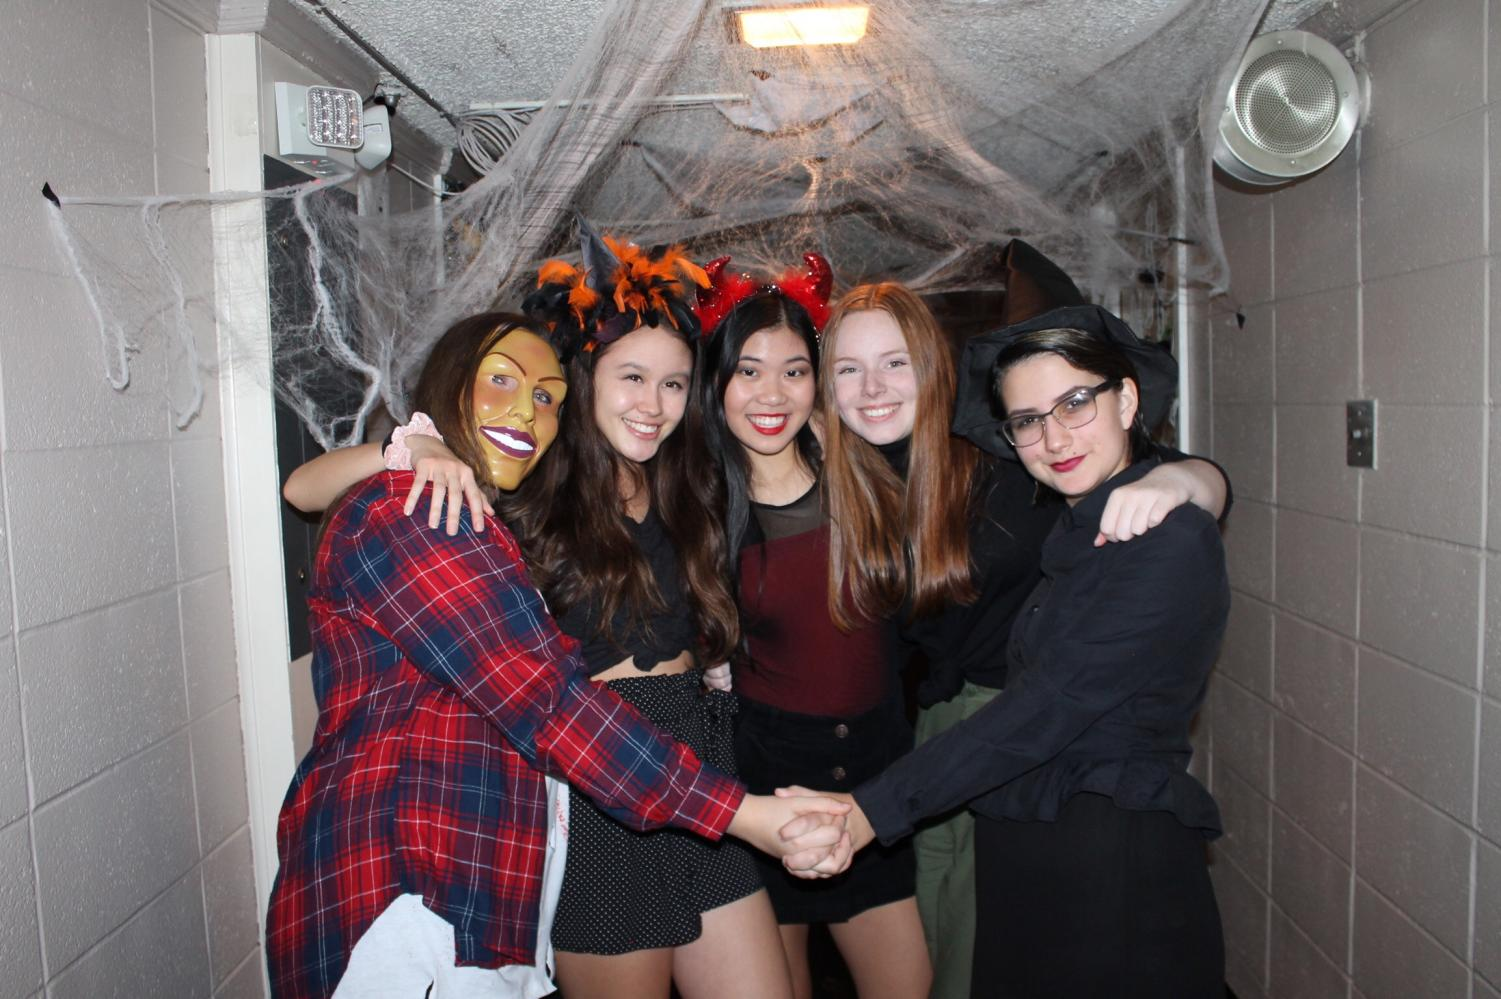 (Left to right) Camryn Mason, Linda Arnoldus, Catherine Li, Alden Wiygul, and Sarah Perry pose in front of their decorated hall.